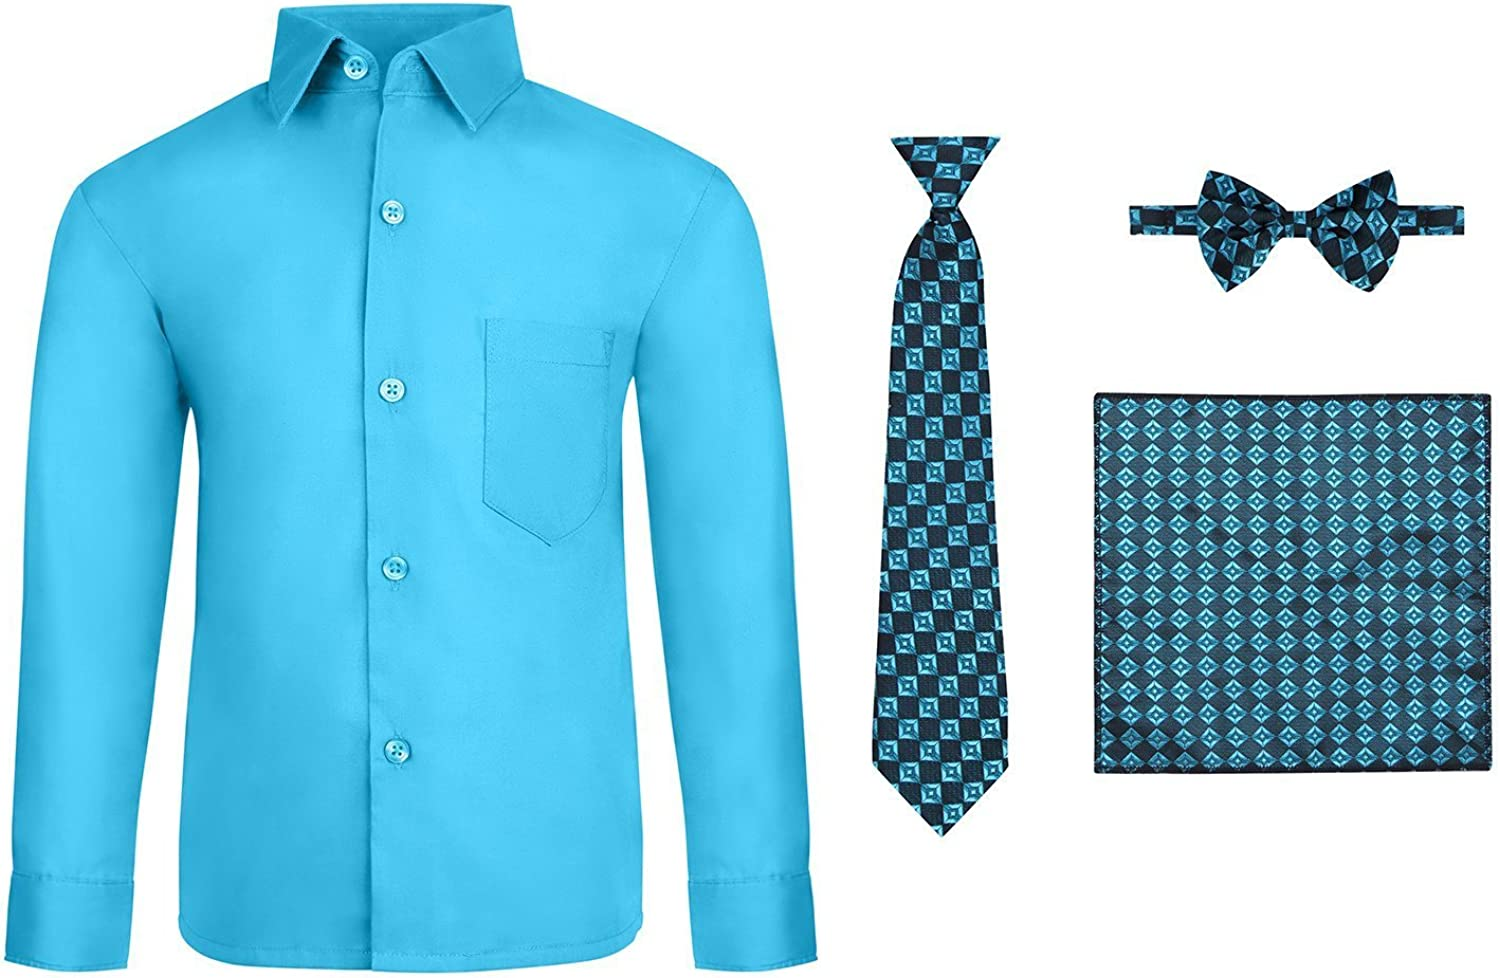 S.H. Churchill Co. Max 84% OFF Boy's 4 Piece Long Set with Tie Dress Max 53% OFF Shirt